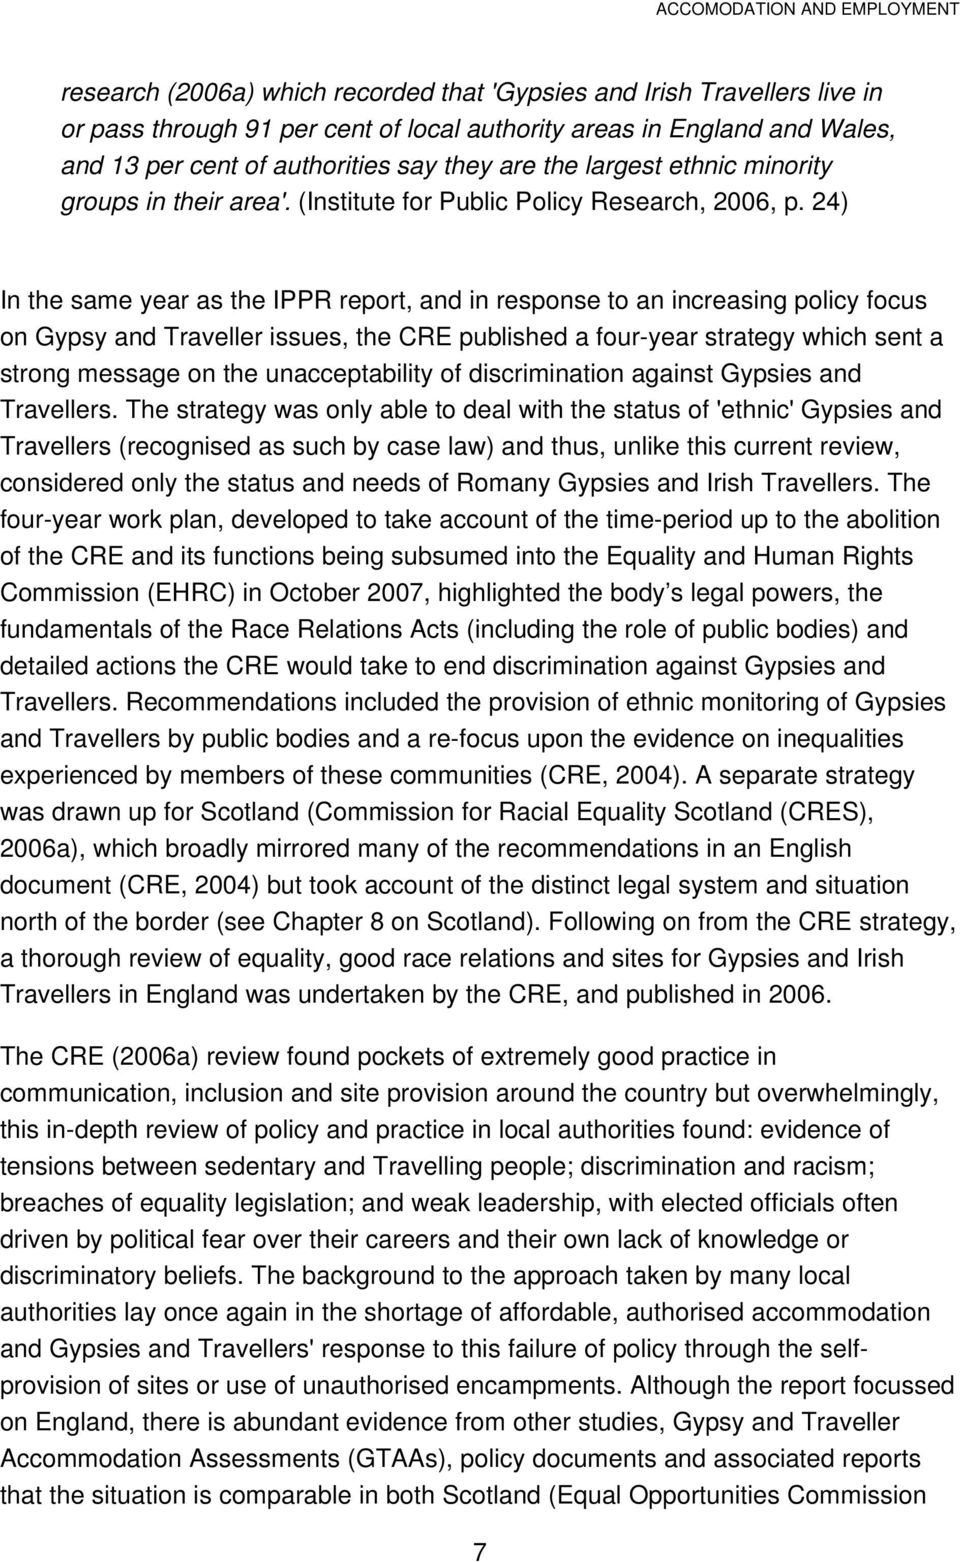 24) In the same year as the IPPR report, and in response to an increasing policy focus on Gypsy and Traveller issues, the CRE published a four-year strategy which sent a strong message on the